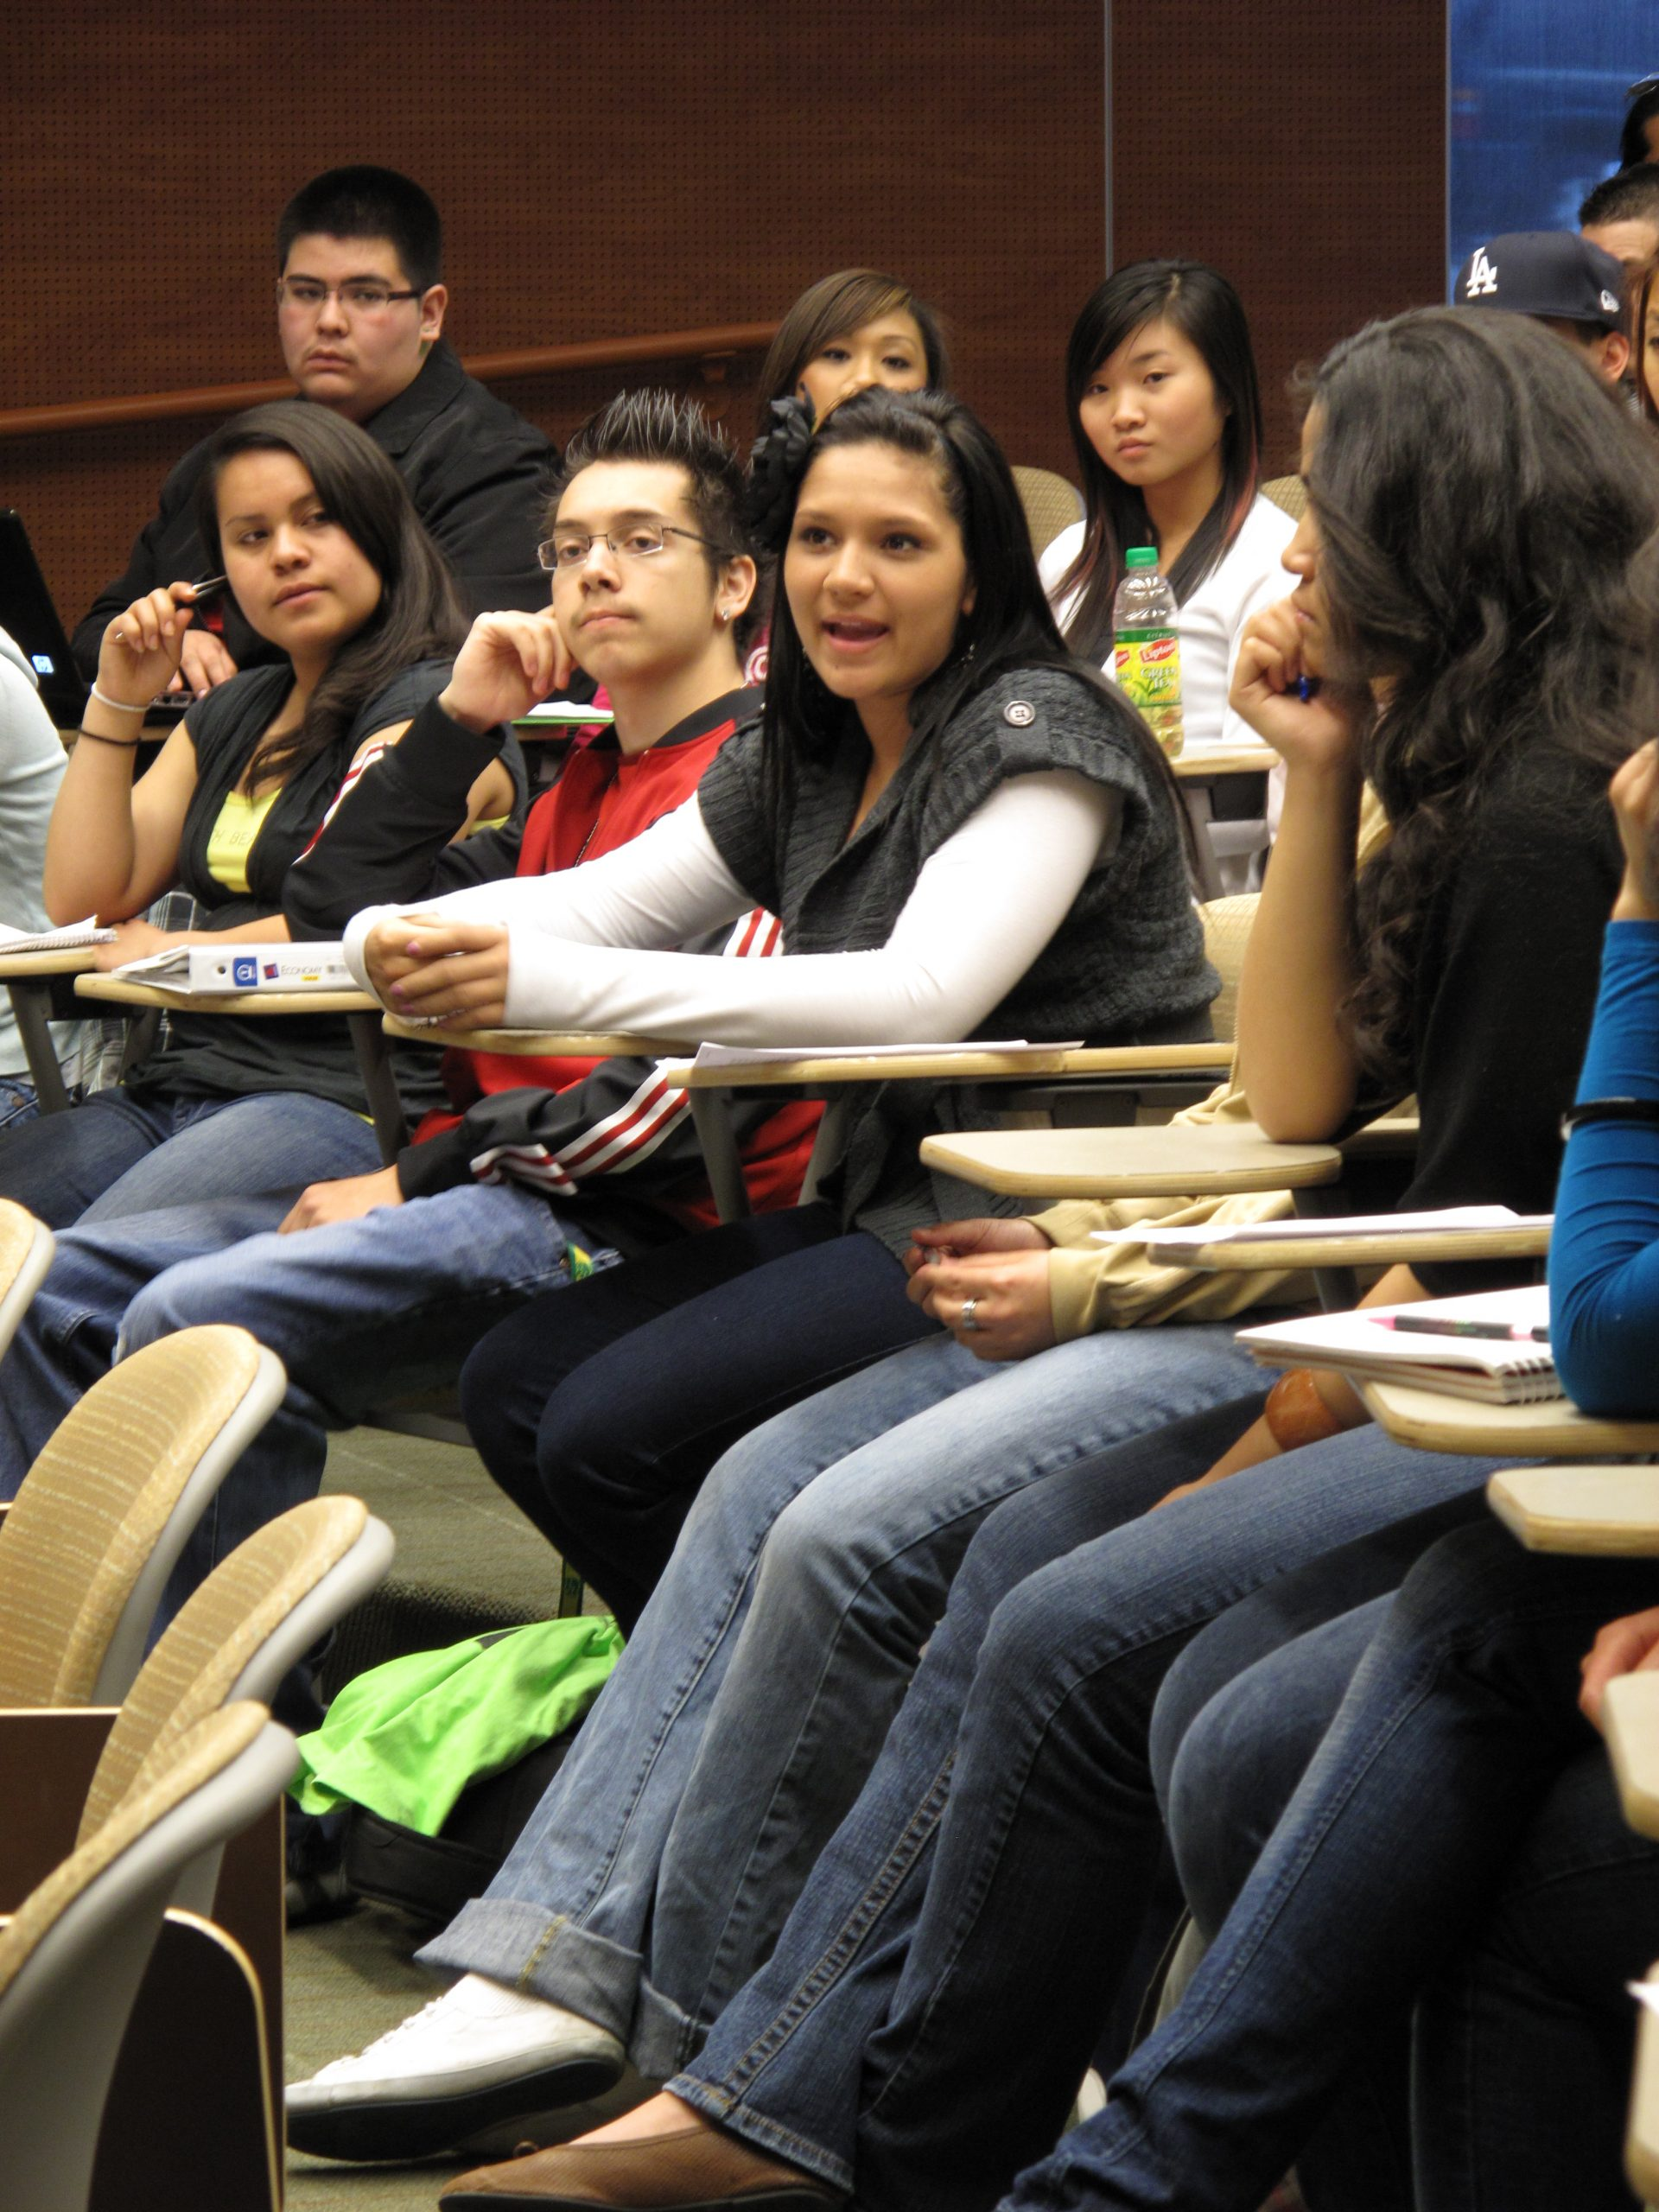 Students engage in discussion during a class in the University of Utah's ethnic studies program. The Utah State Board of Regents has approved expansion of the program to become a major.